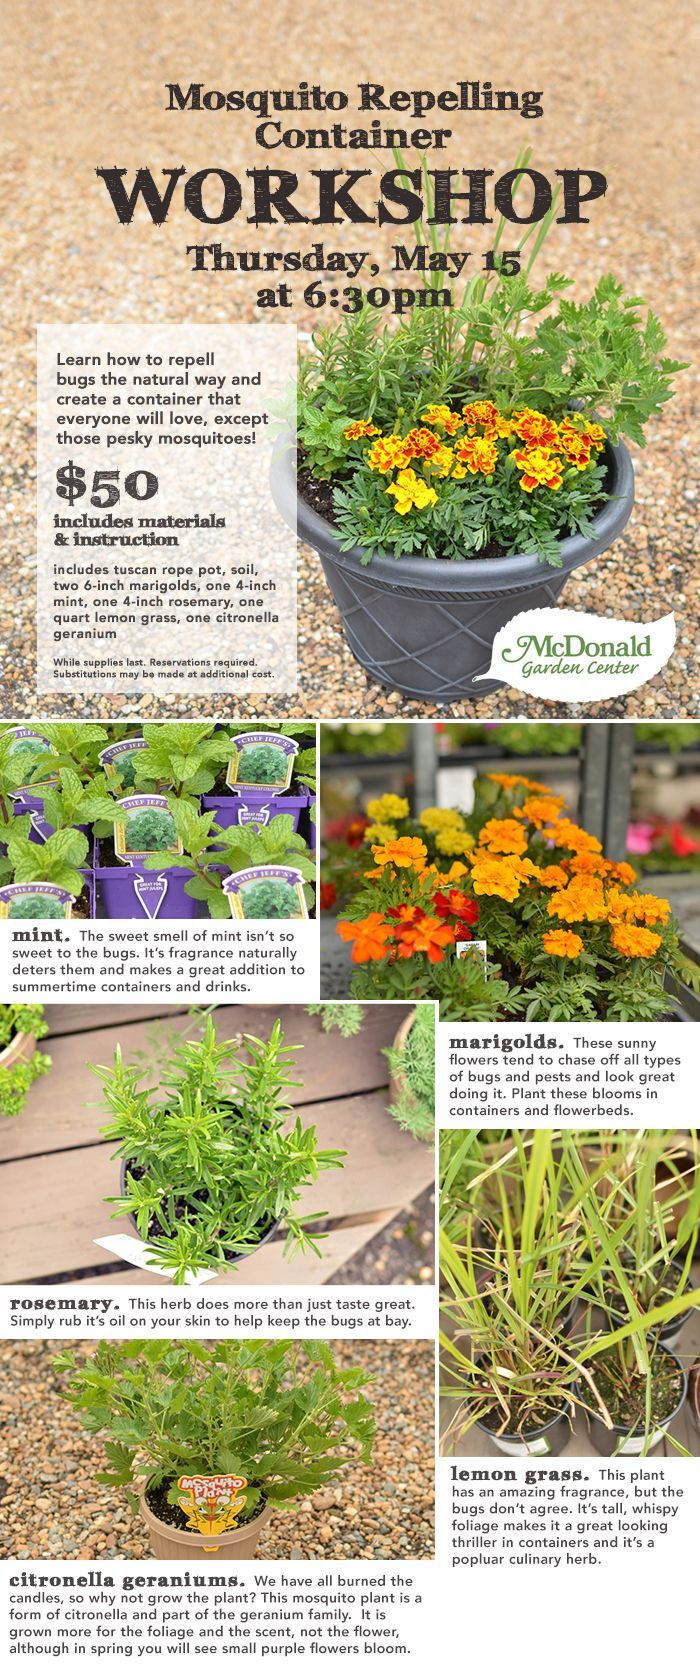 container everyone will love...except those pesky mosquitoes! Learn how to repel bugs the natural way using plants and flowers that naturally repel mosquitoes and other pests while looking great through the hot, hazy days of summer.